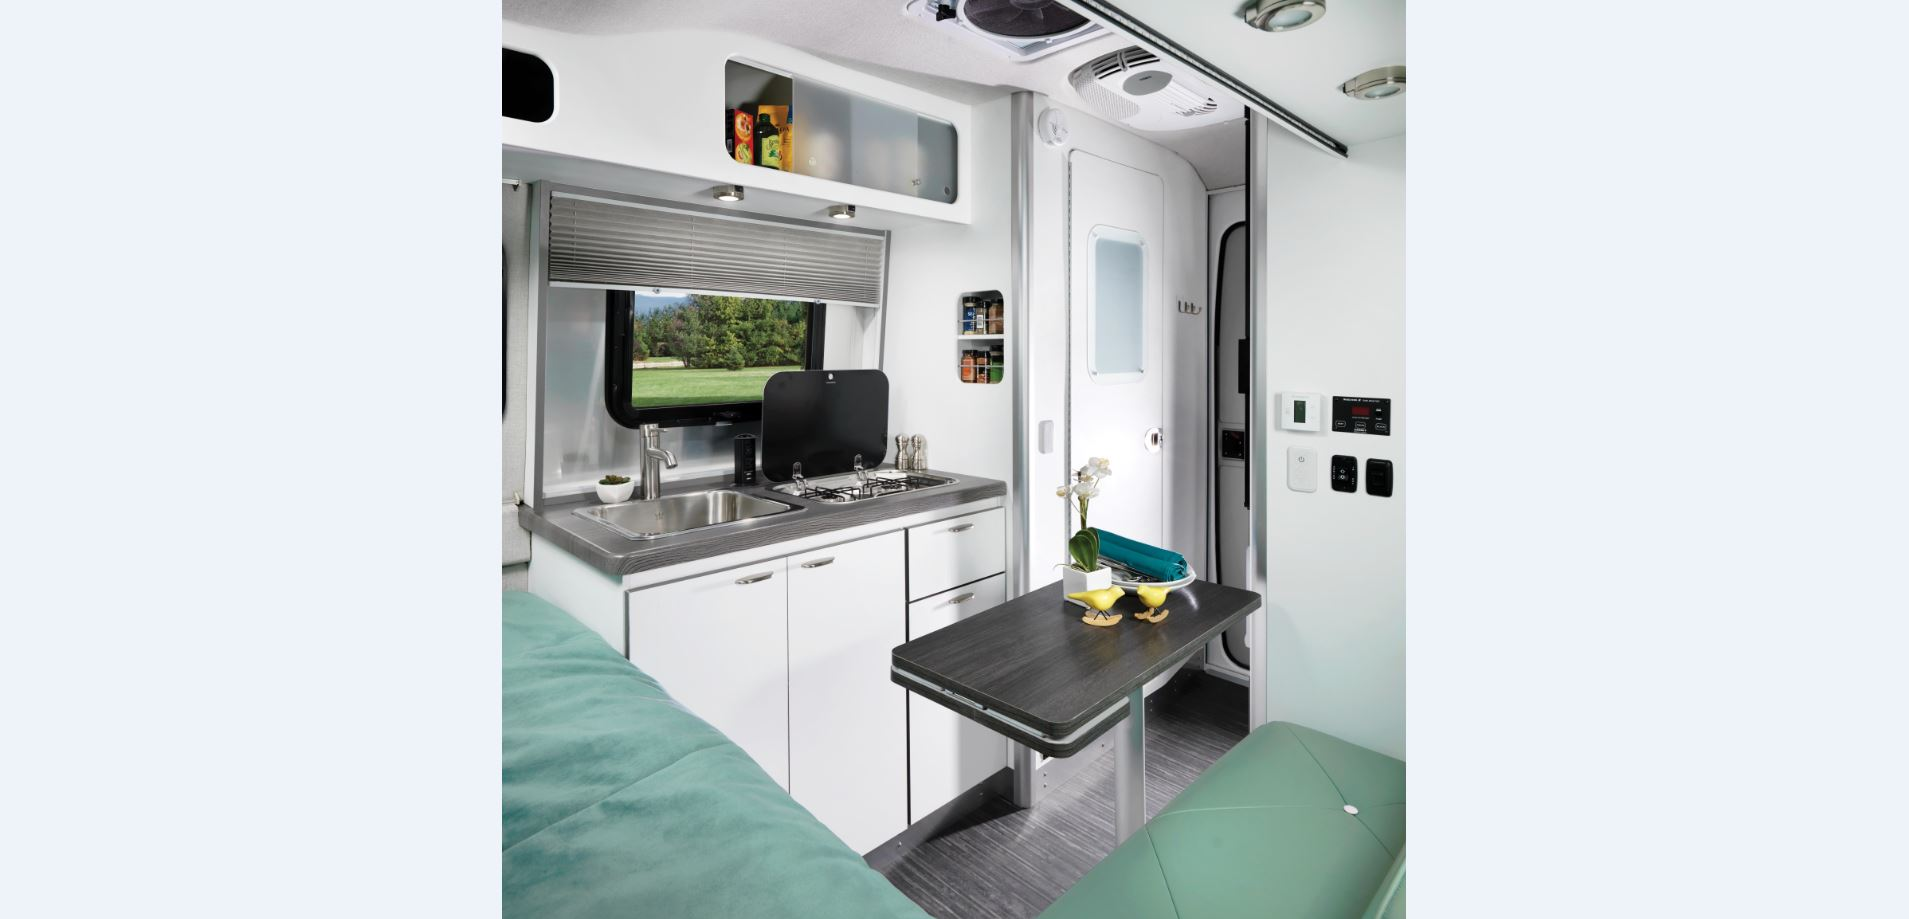 2018 Nest by Airstream l Interior l Galley